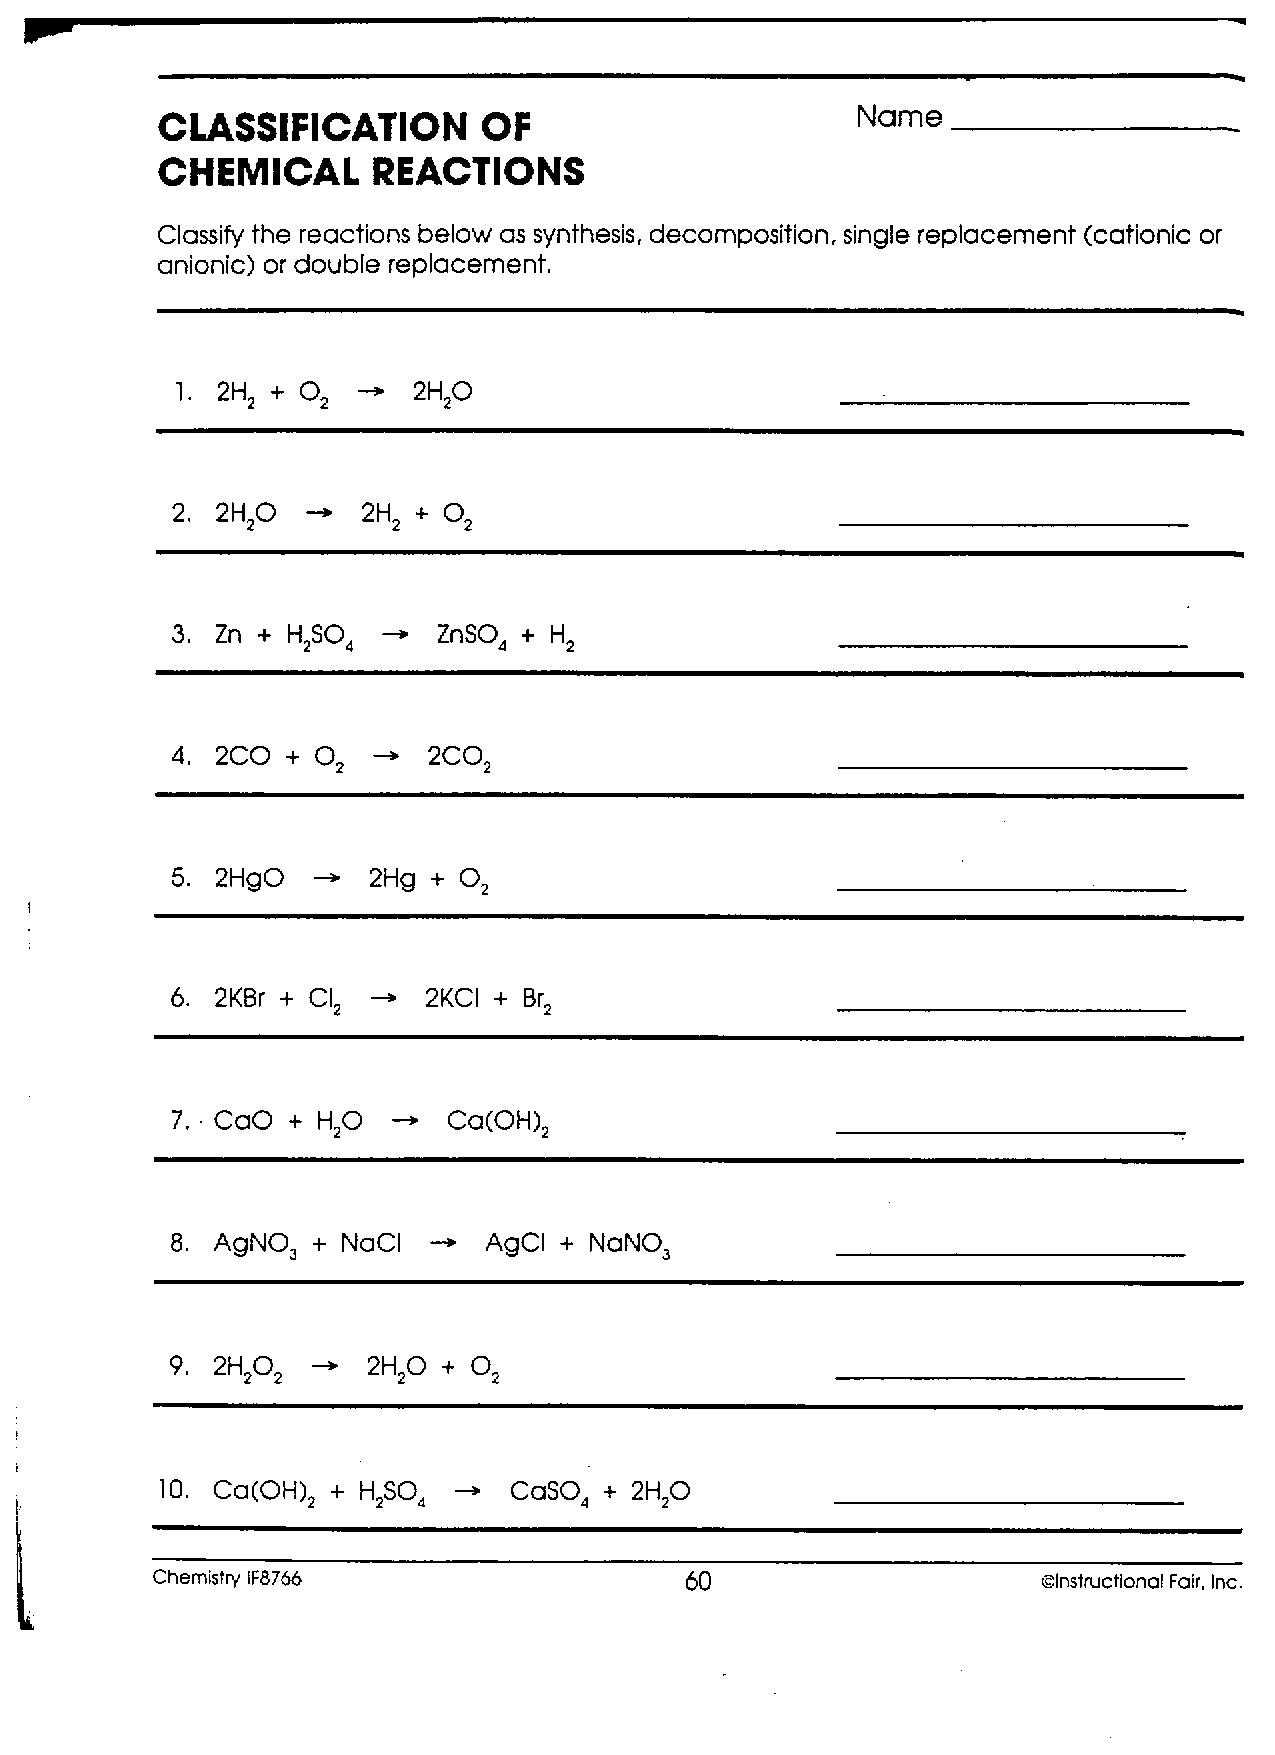 Classification Of Chemical Reactions Worksheet as Well as Classification Chemical Reactions Worksheet Answers New Dc Heath